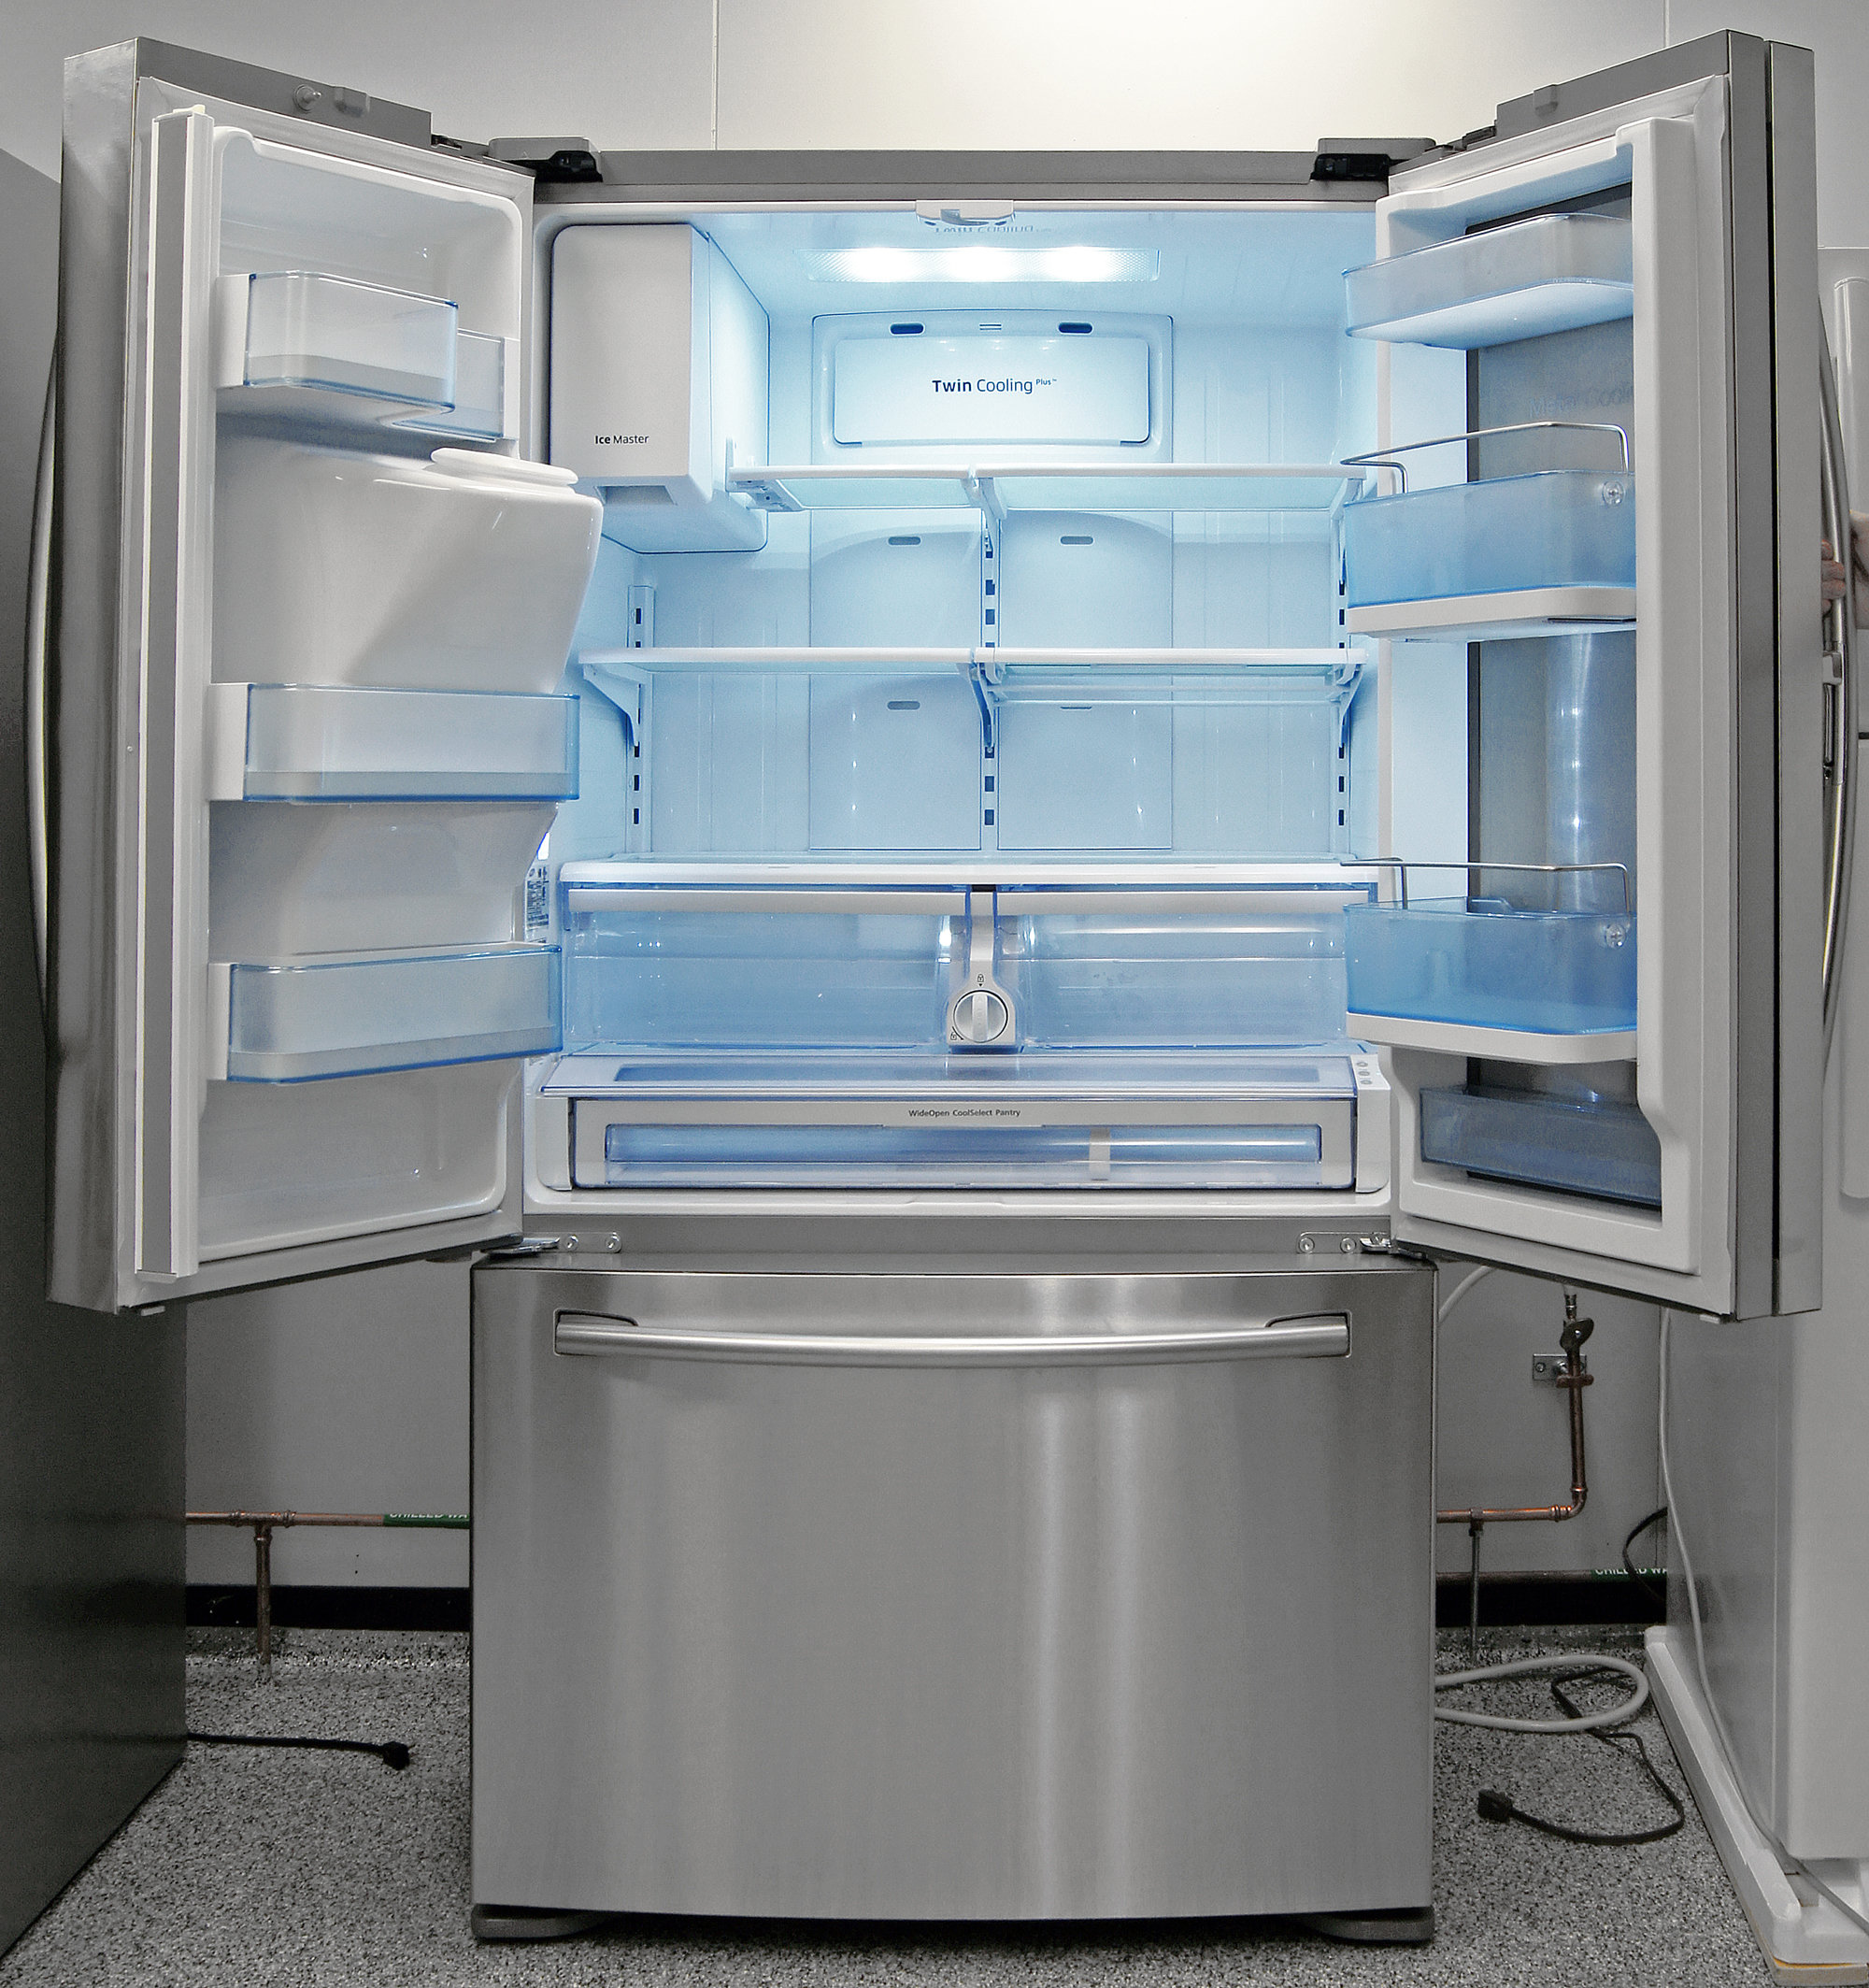 Samsung Rf23htedbsr Counter Depth Refrigerator Review